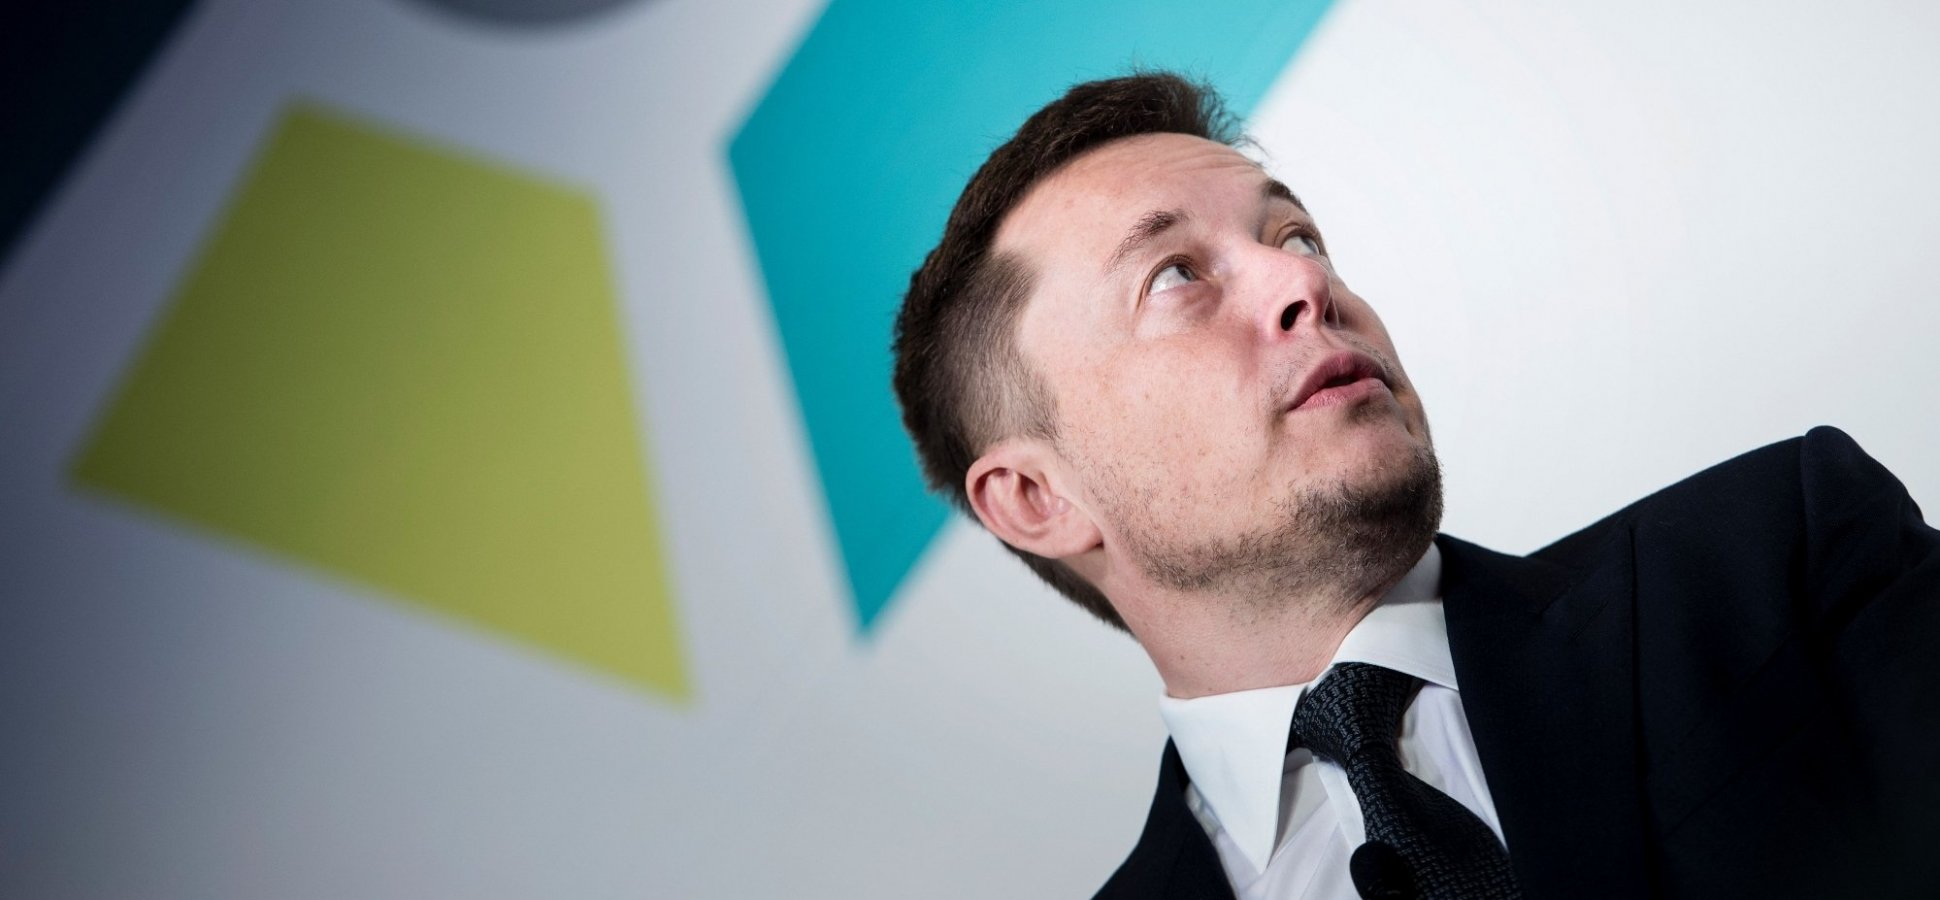 Elon Musk and Jeff Bezos Just Dropped the Best Business Advice You'll Read Today